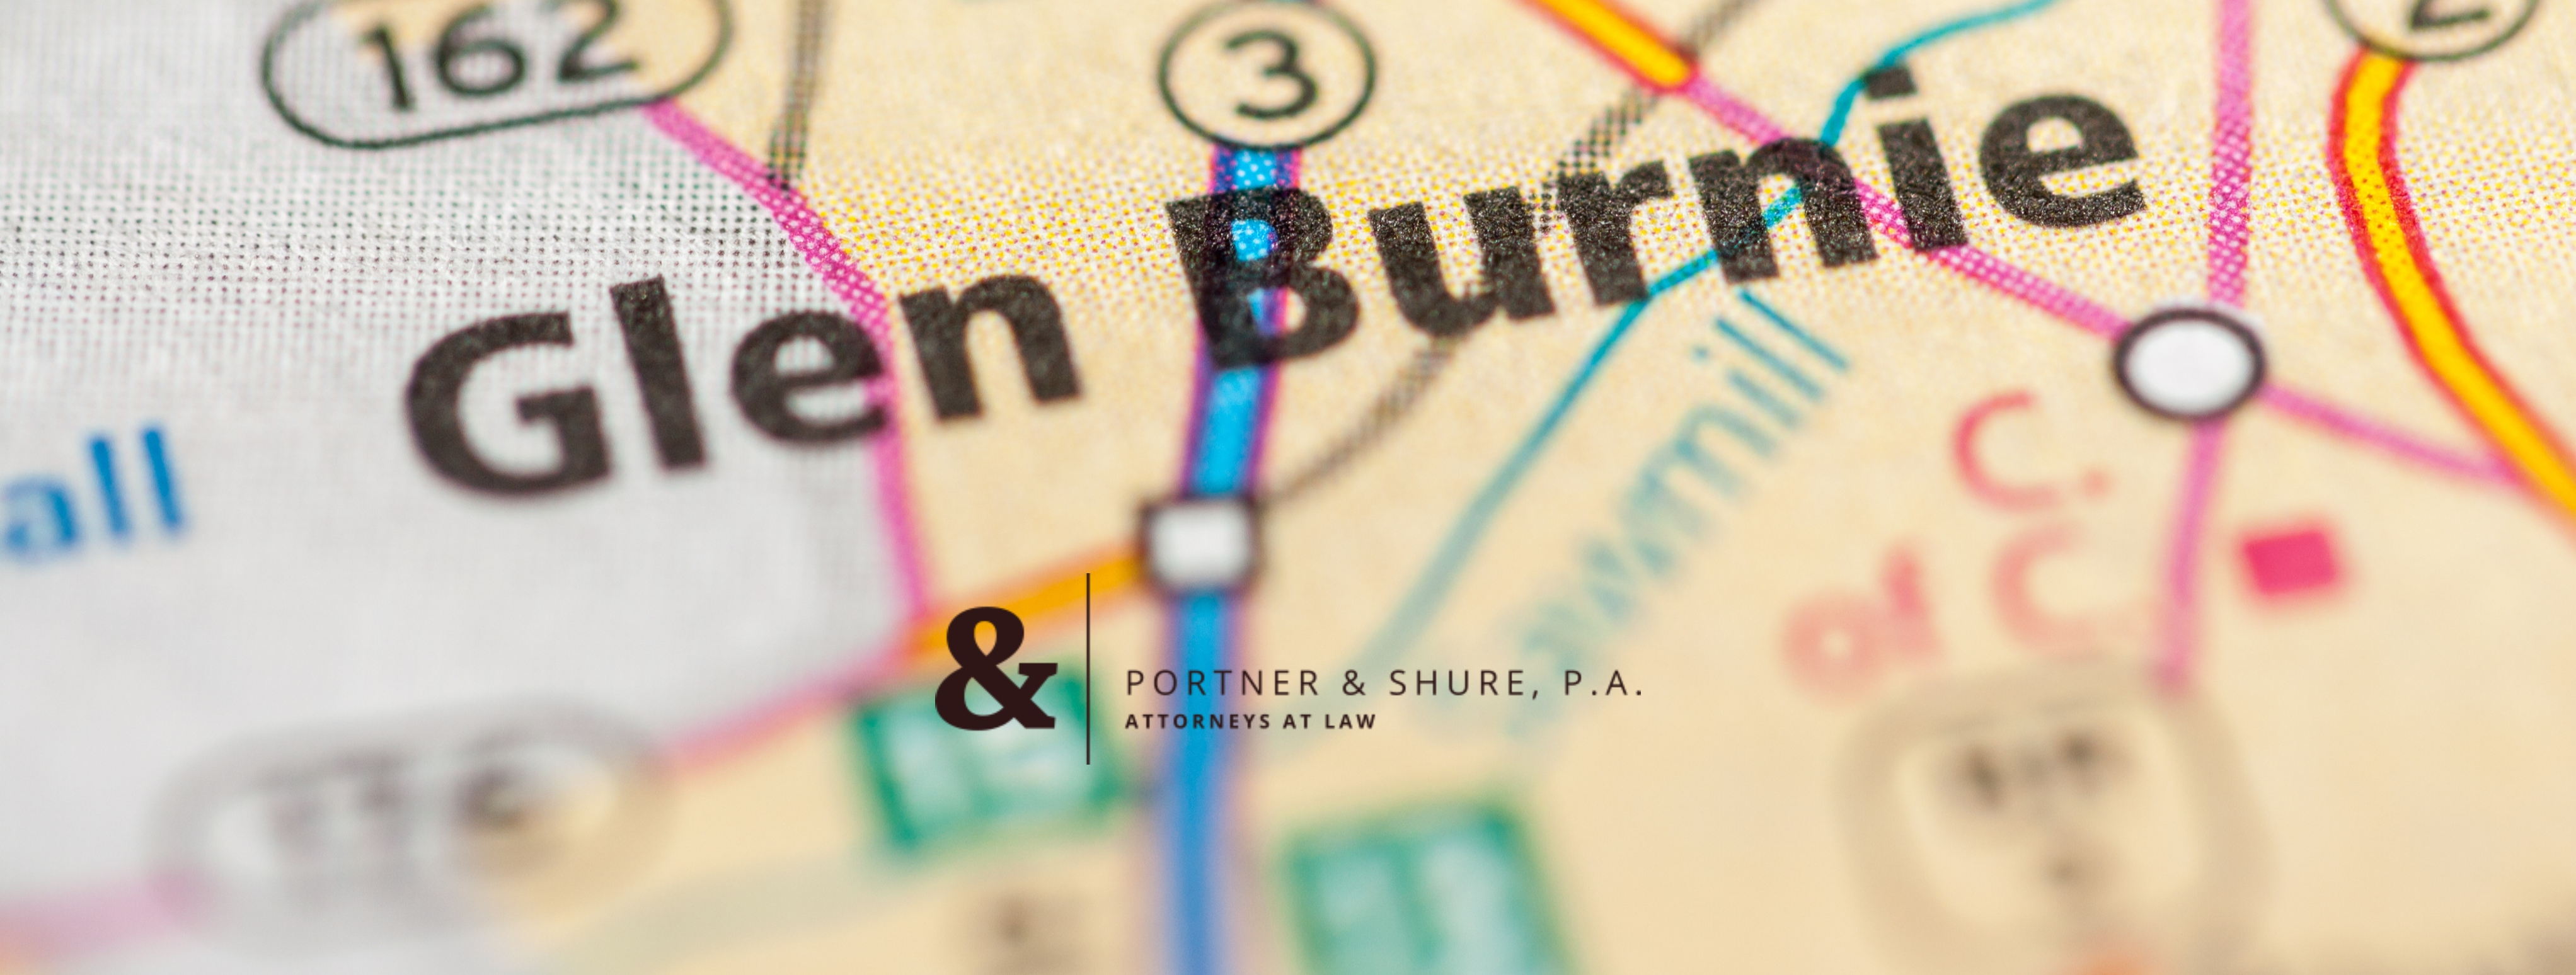 Glen Burnie Map